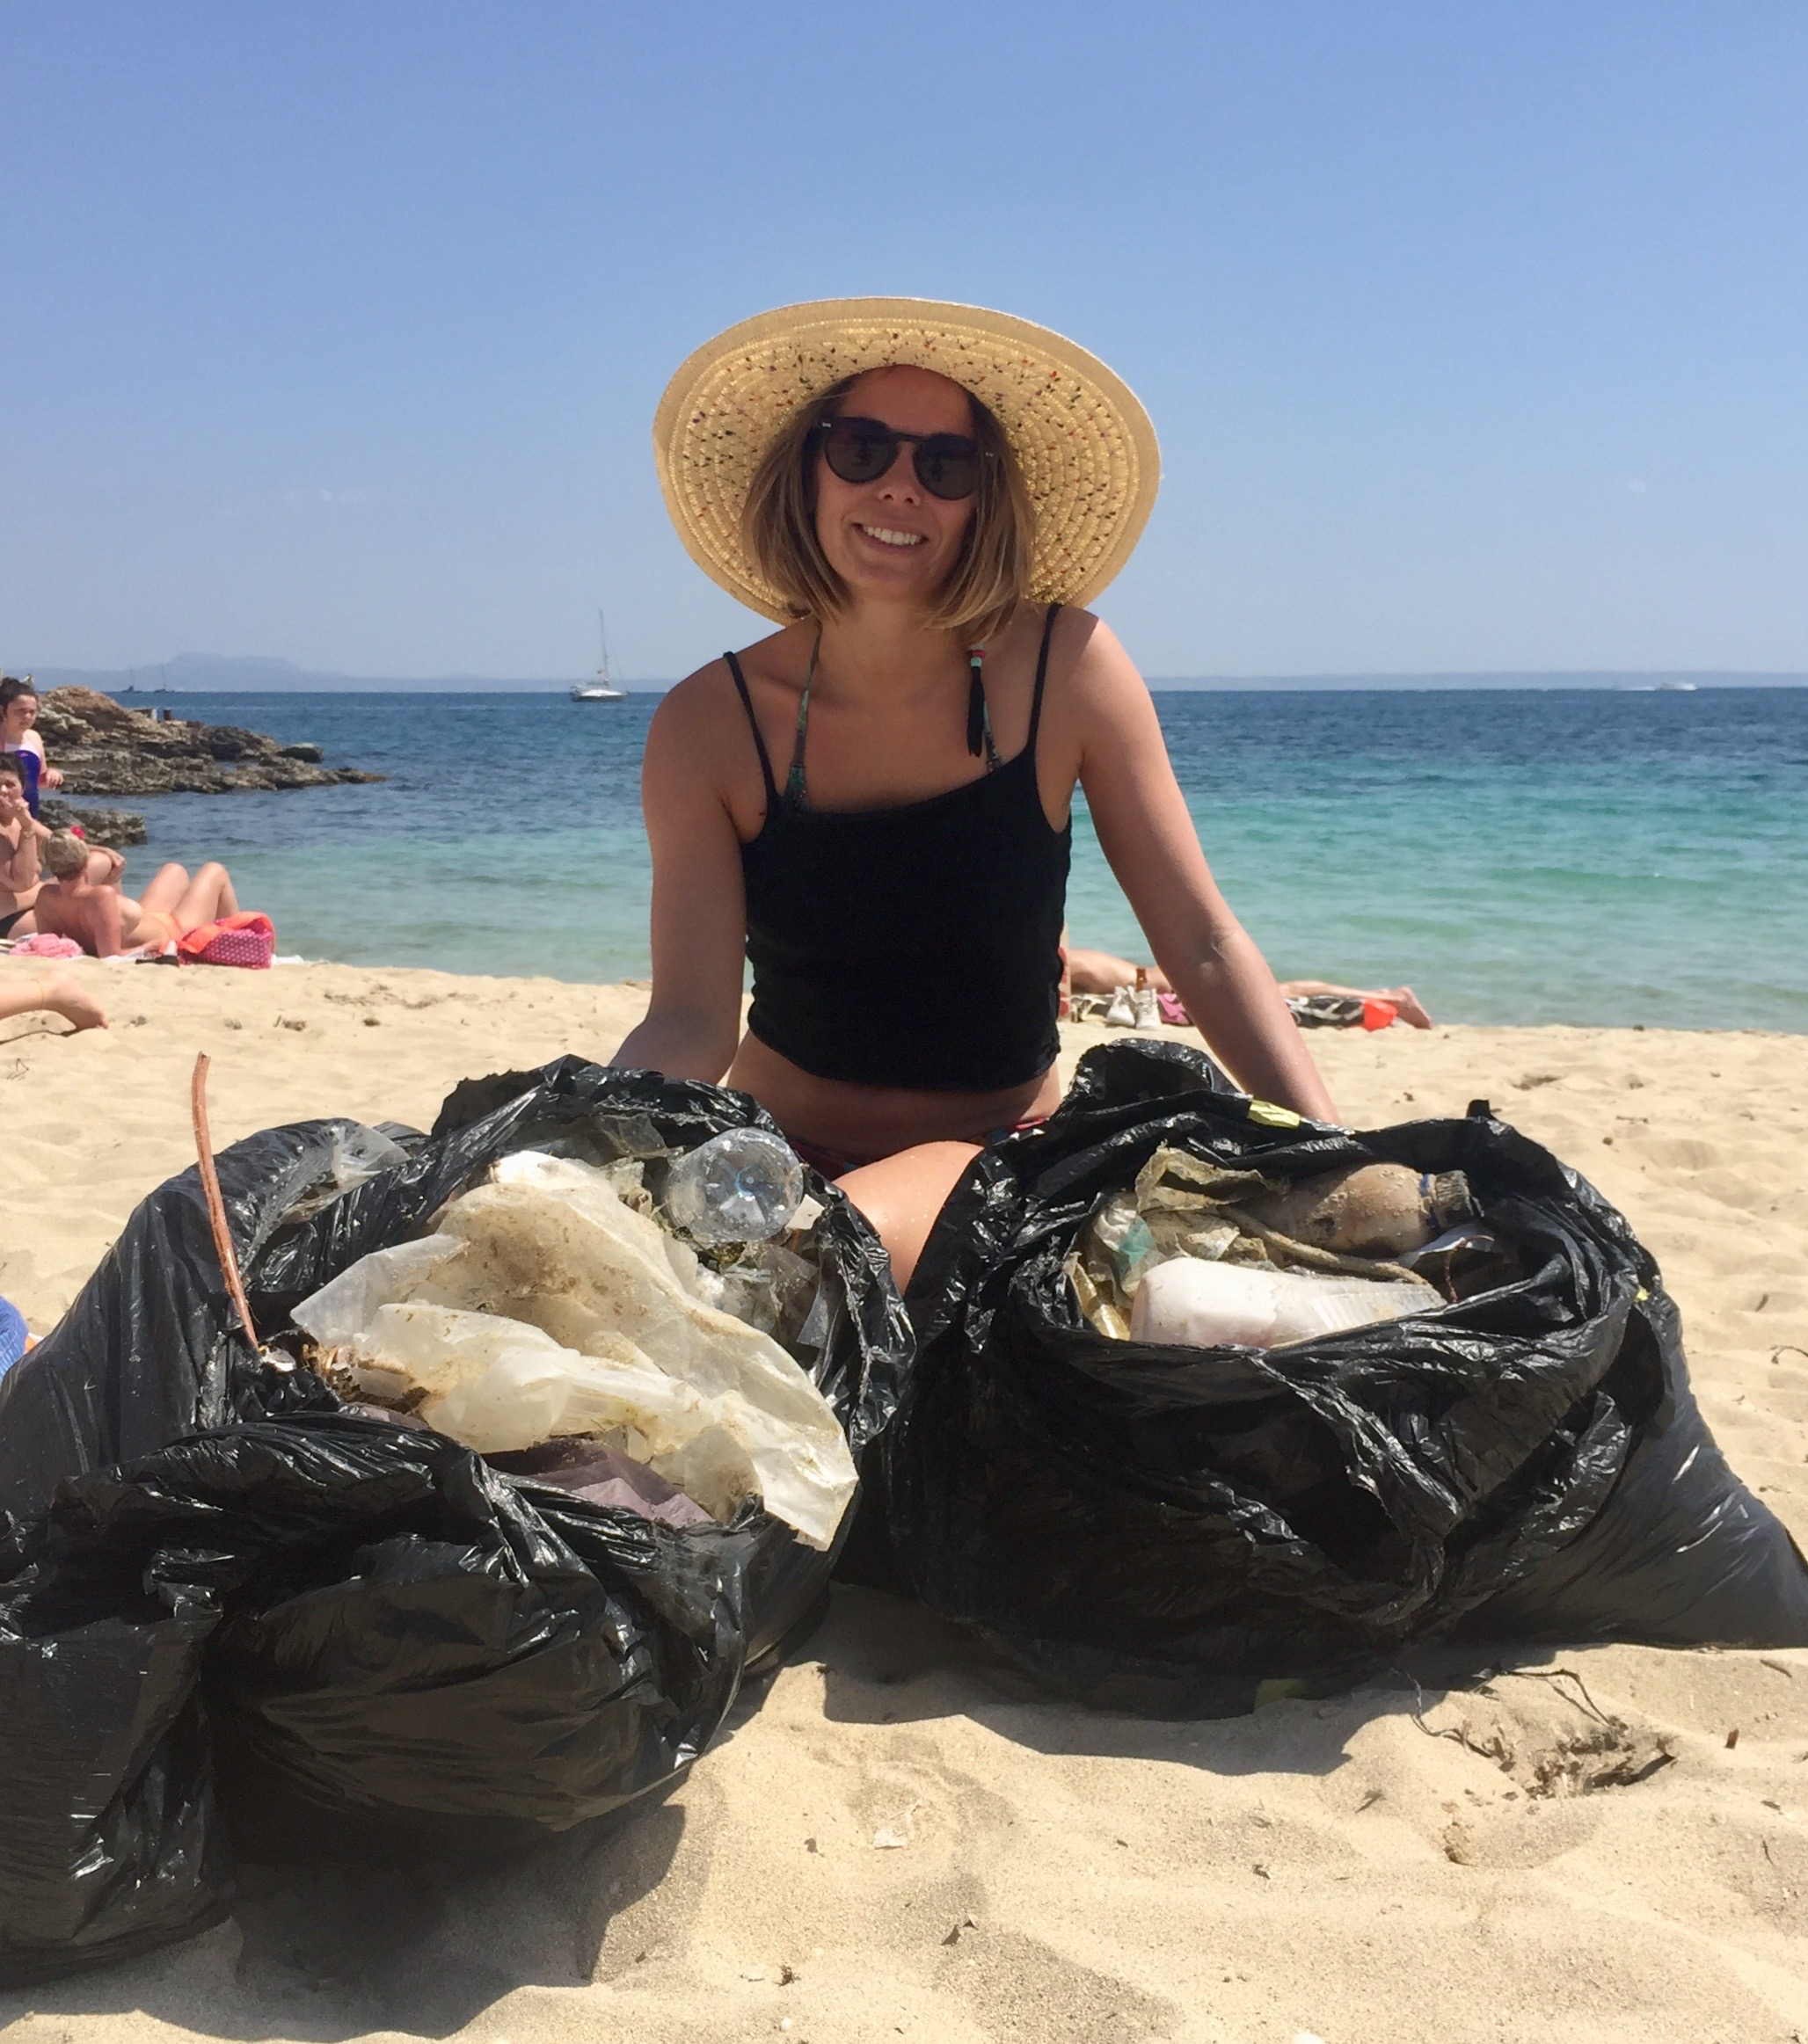 Girl on a beach with full rubbish bags